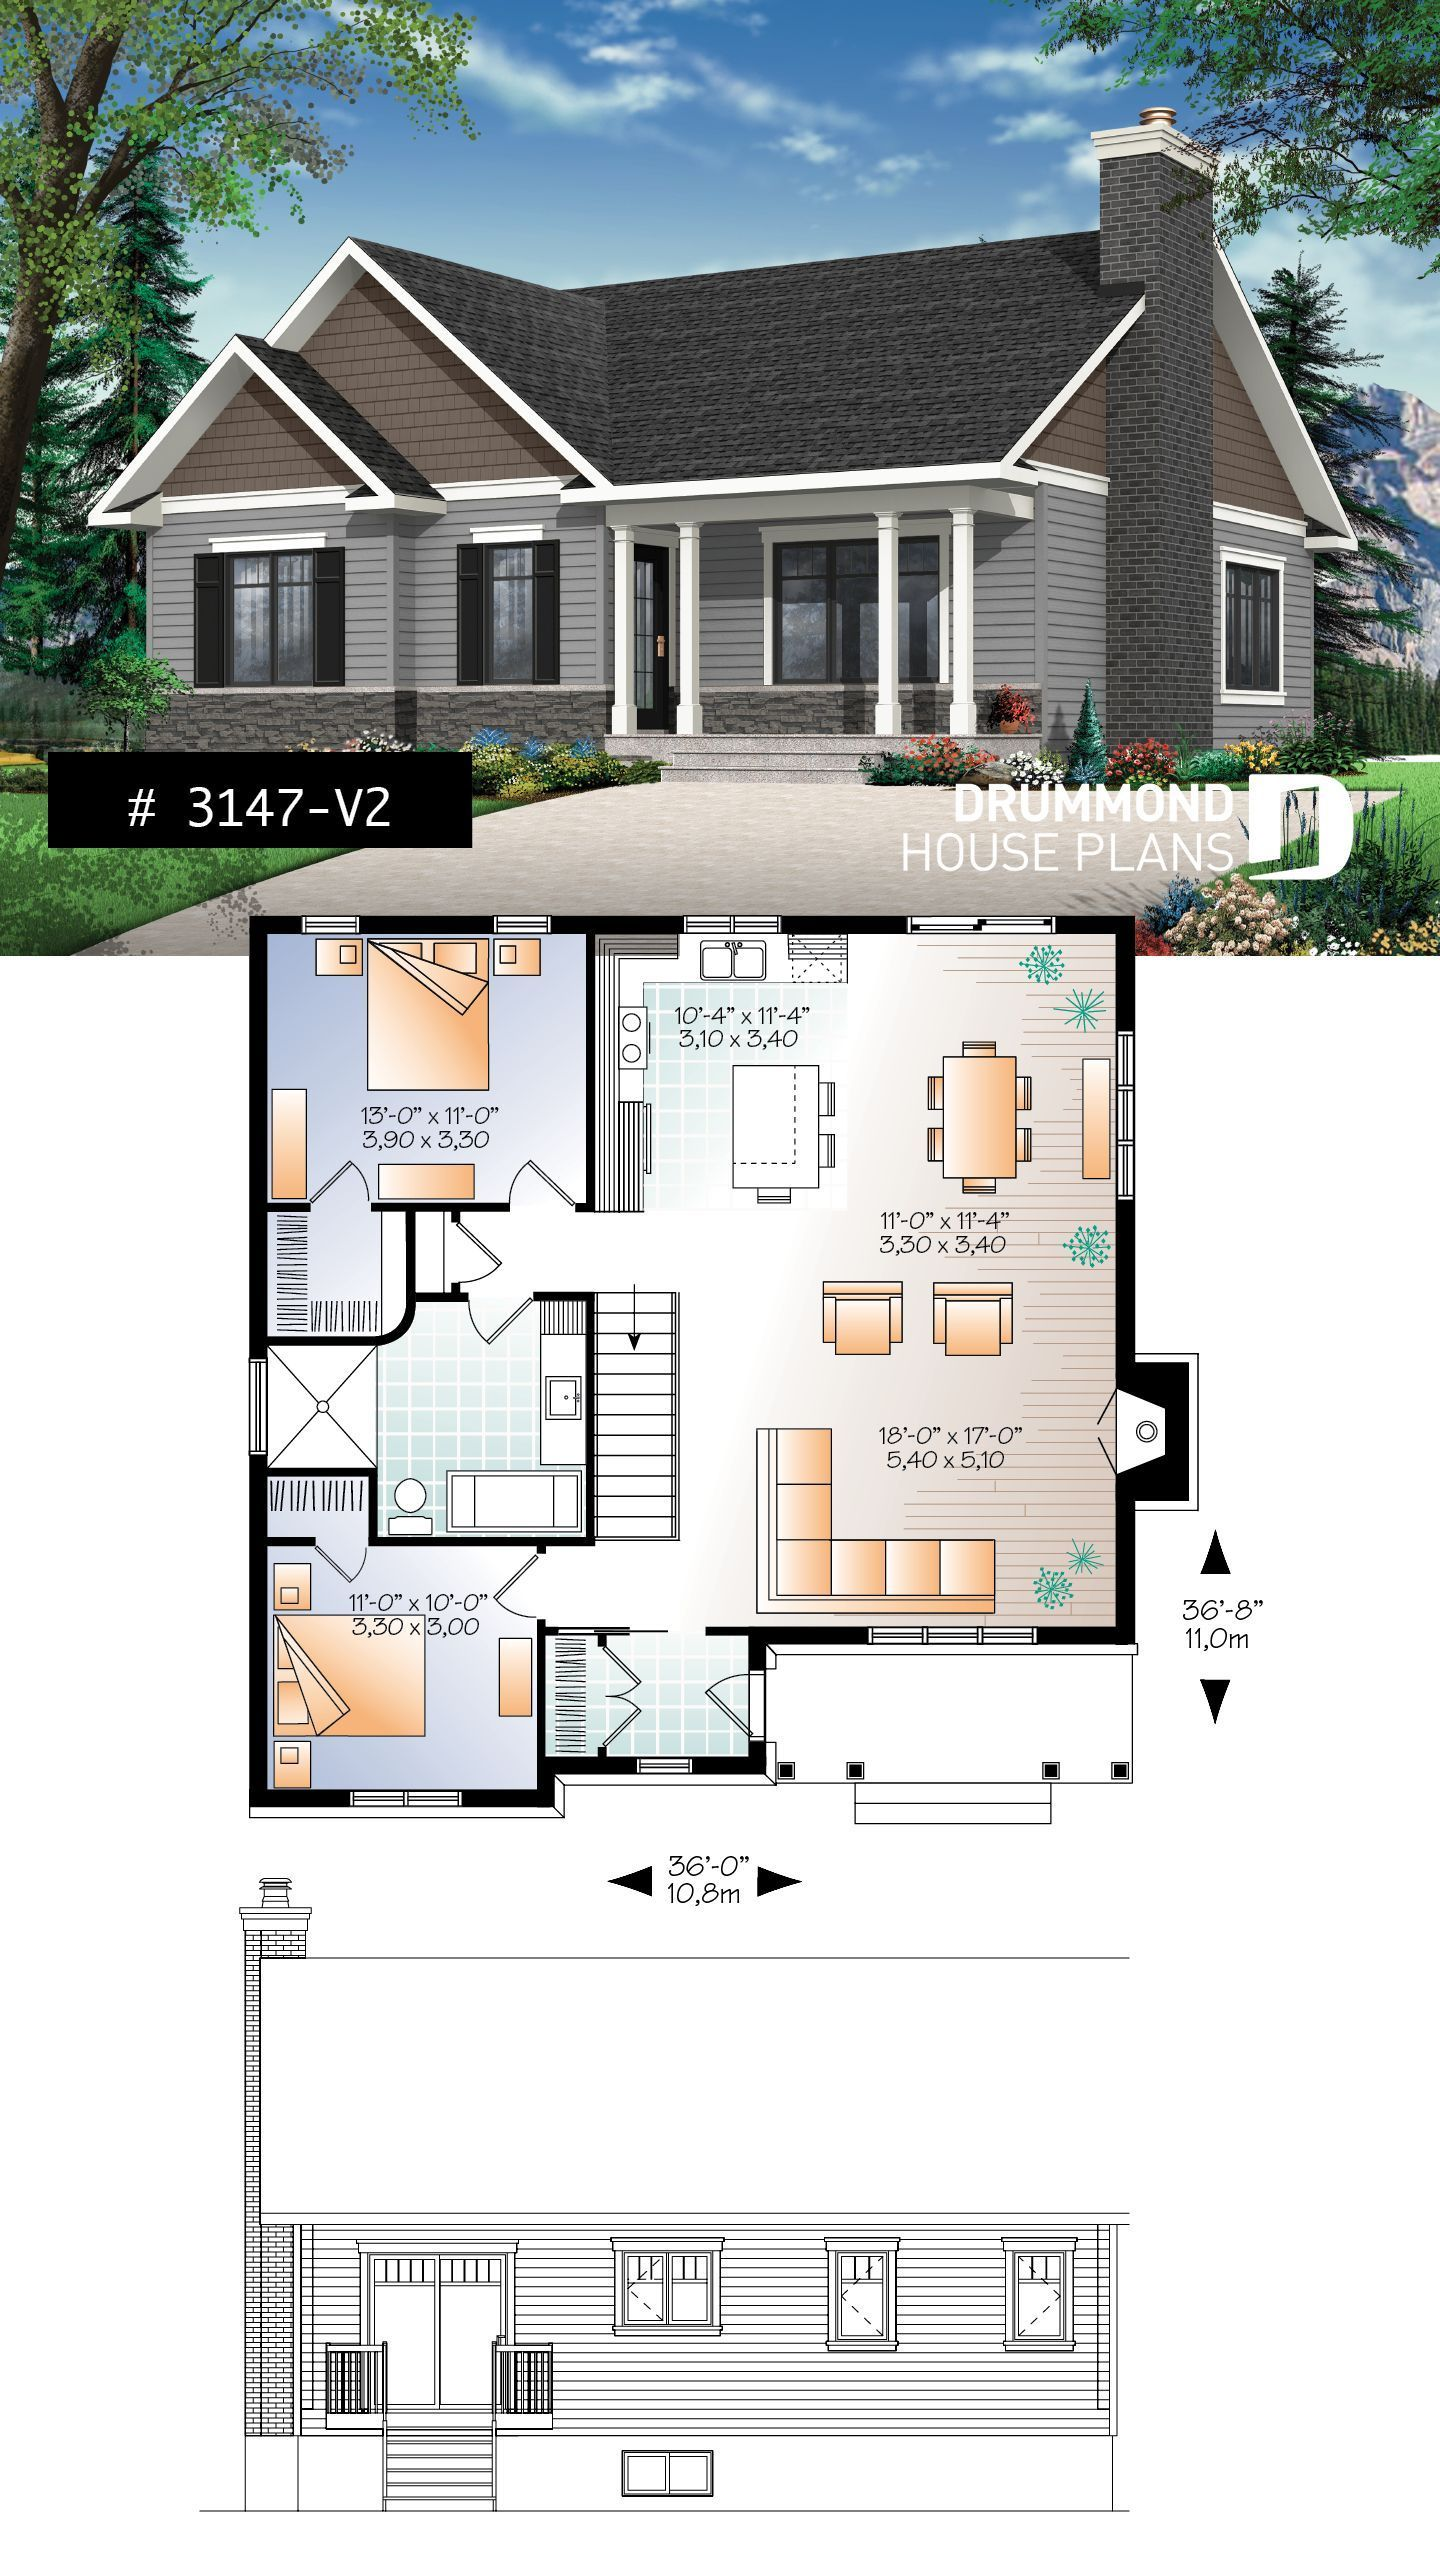 Small Affordable House Plan Transitional Bungalow House Plan With Open Fl In 2020 Bungalow House Plans Affordable House Plans Small Affordable House Plans